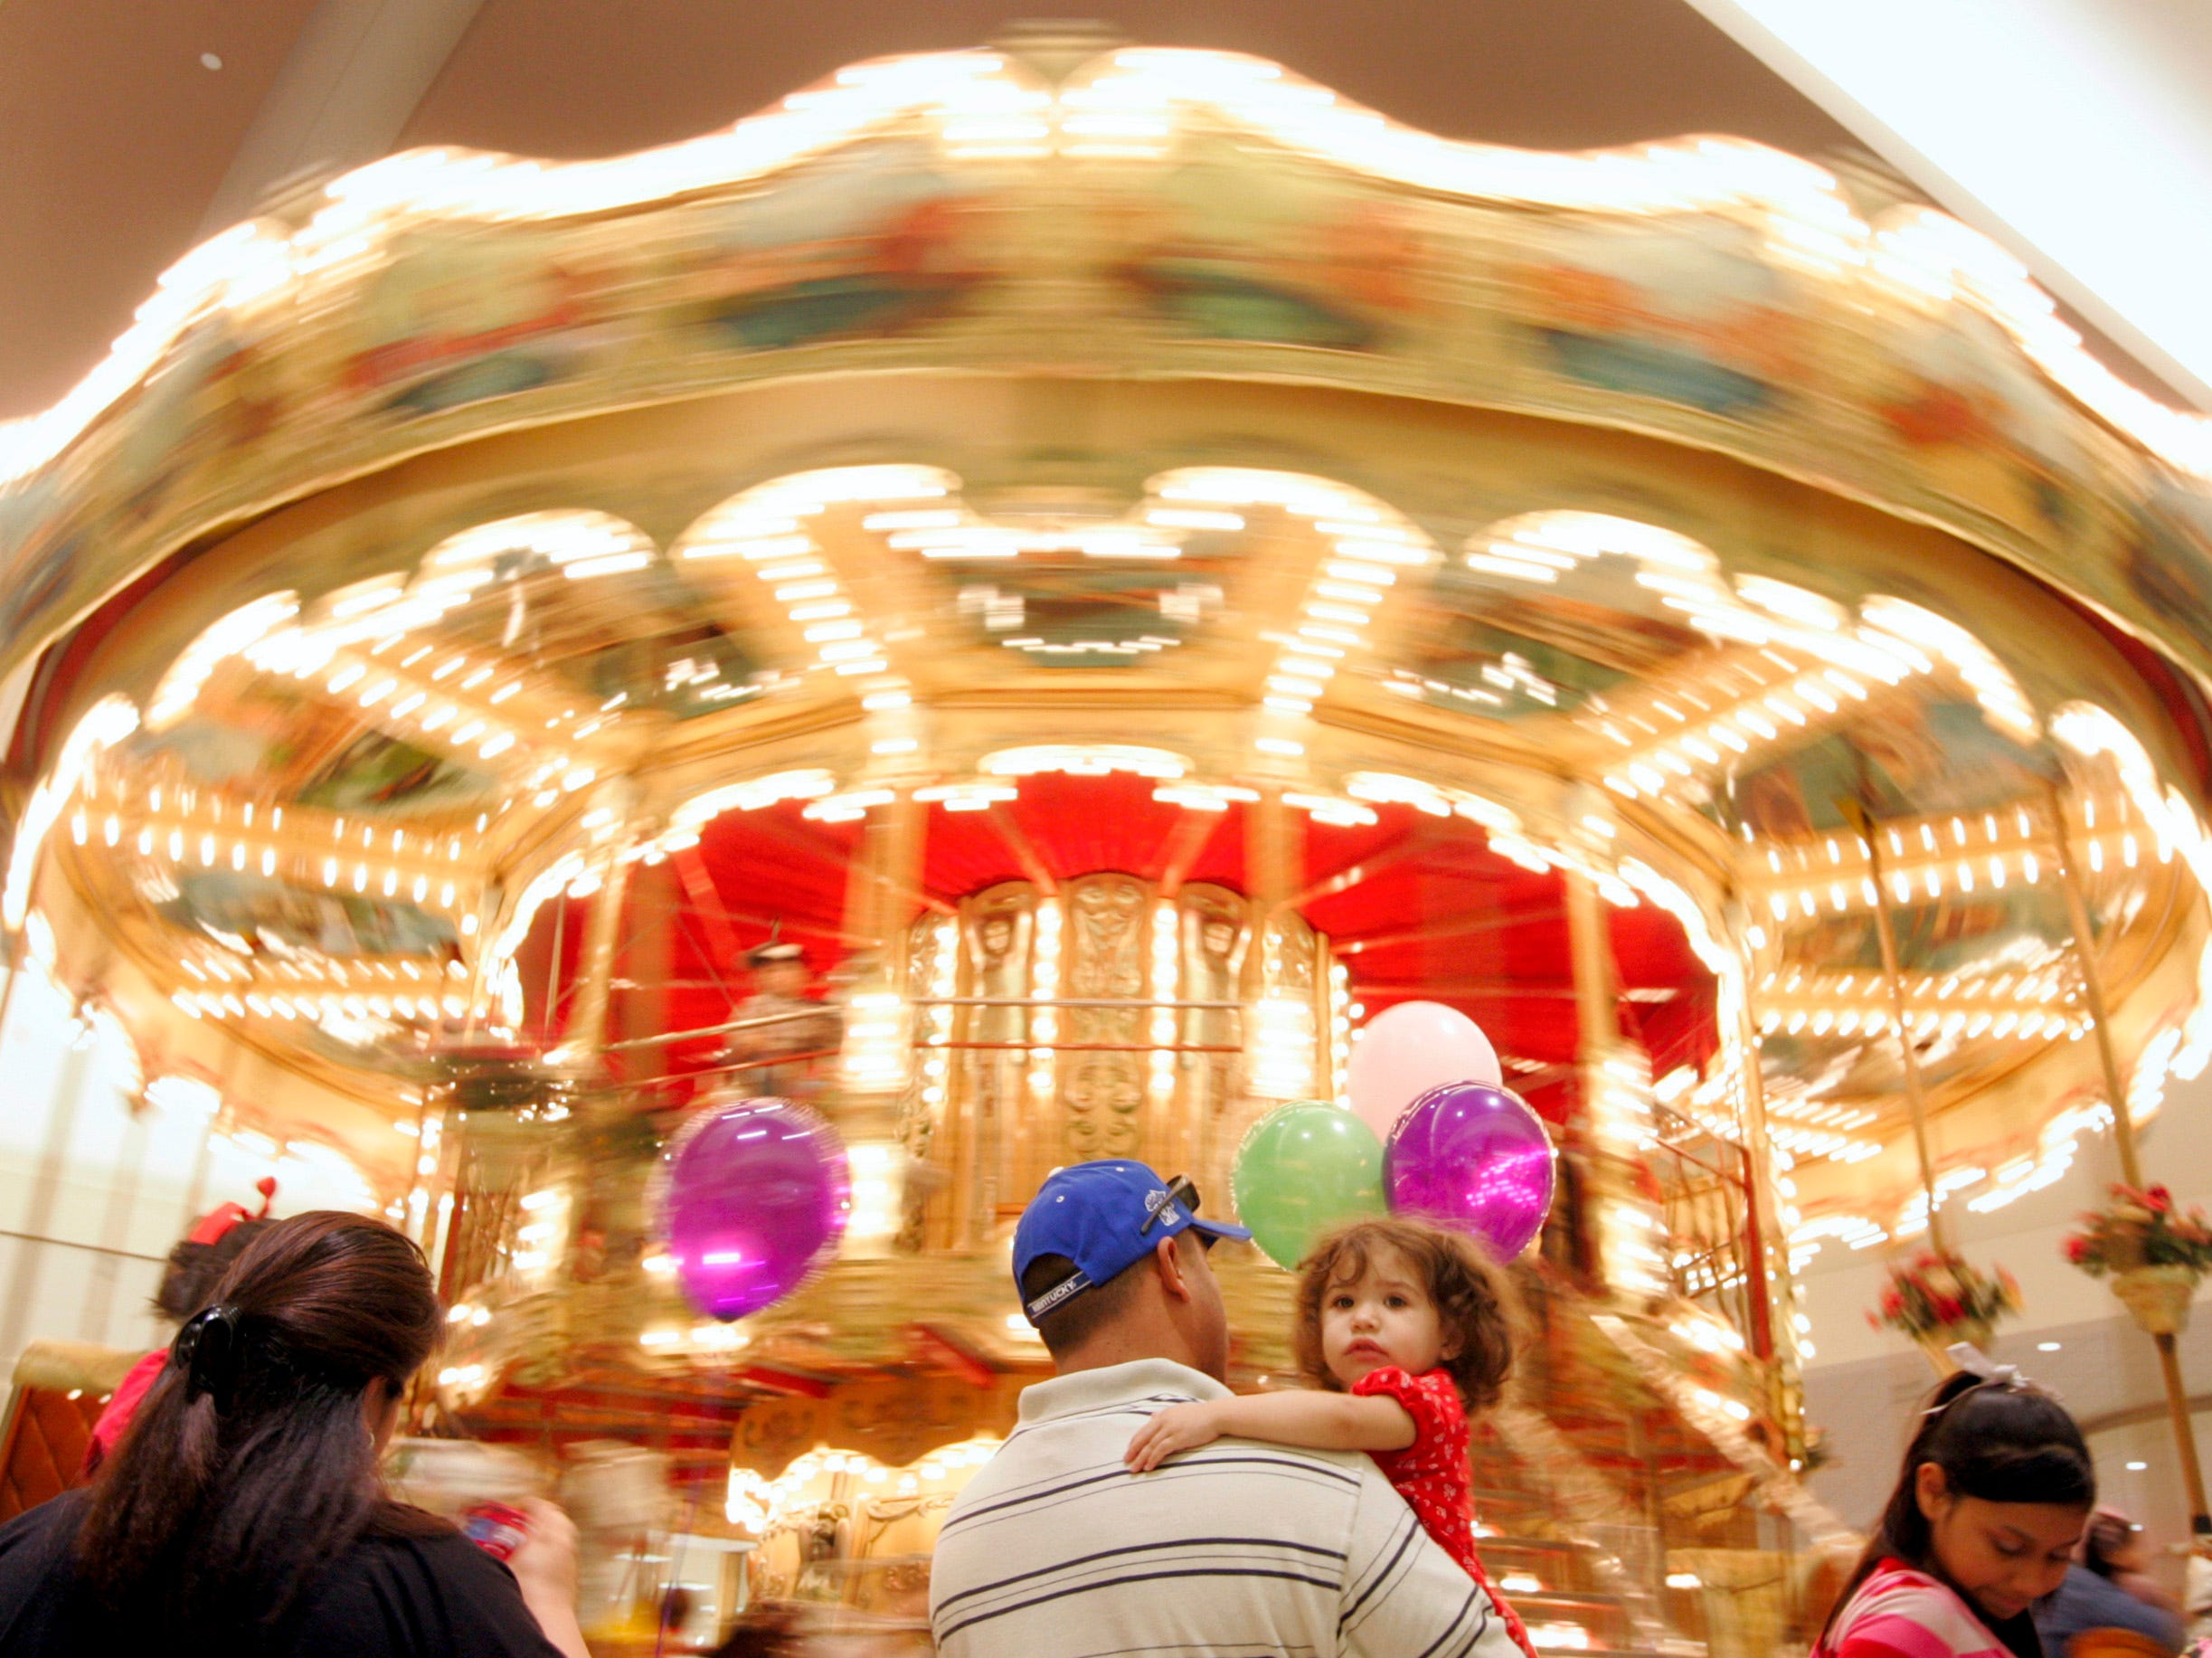 2-year-old Alexis Atkinson waits in line with her father, Ector, before taking a spin on the carousel Saturday, Jan. 31, 2009 at La Palmera mall in Corpus Christi. A steady flow of customers came out for a final ride before the carousel was dismantled and removed from the mall.